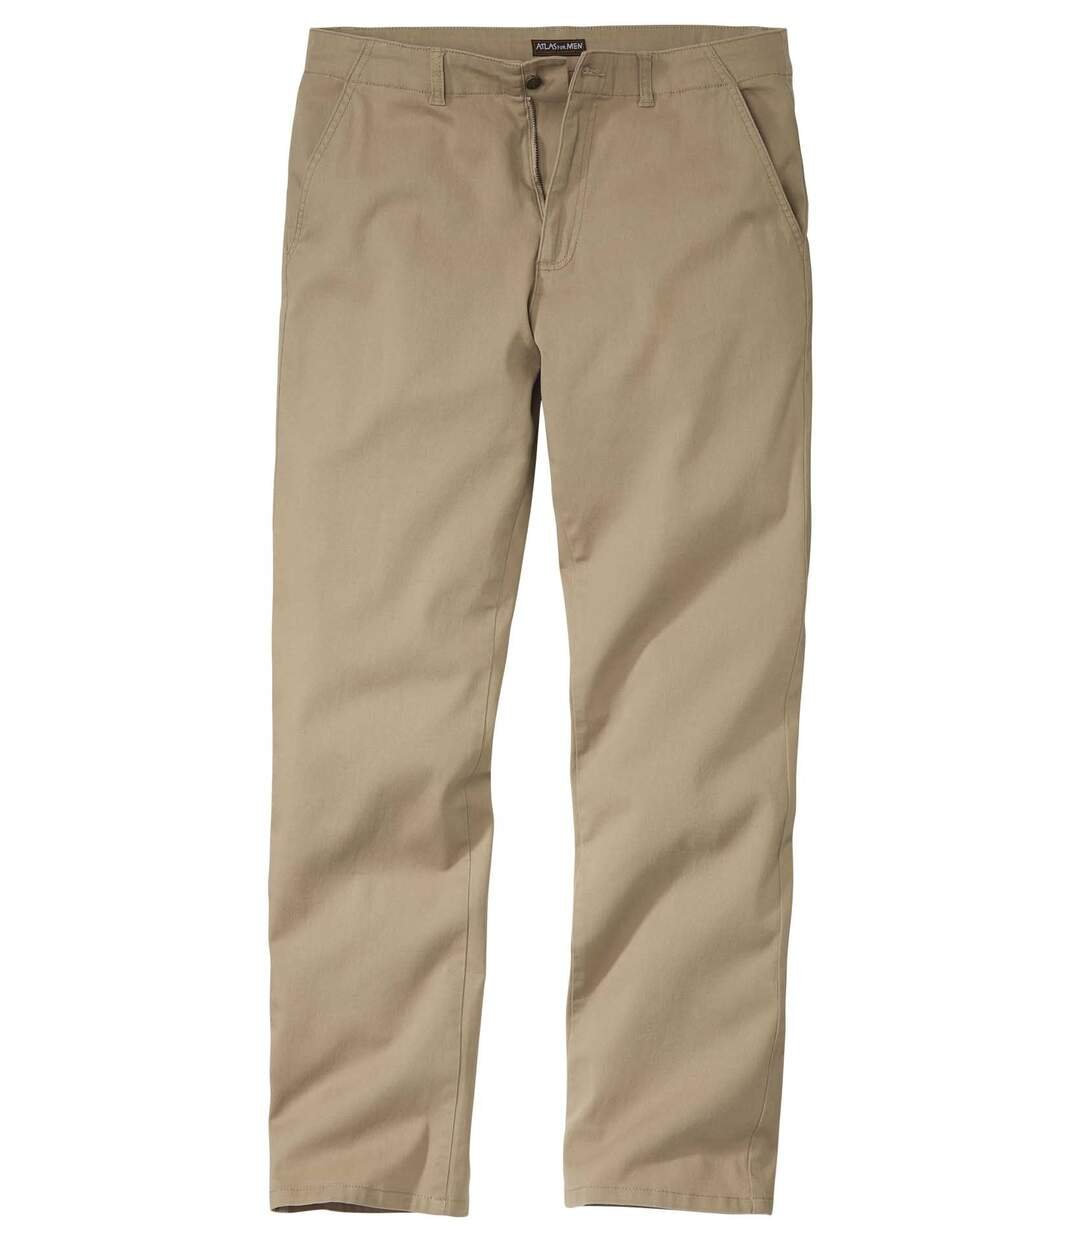 Men's Beige Stretch Twill Chinos